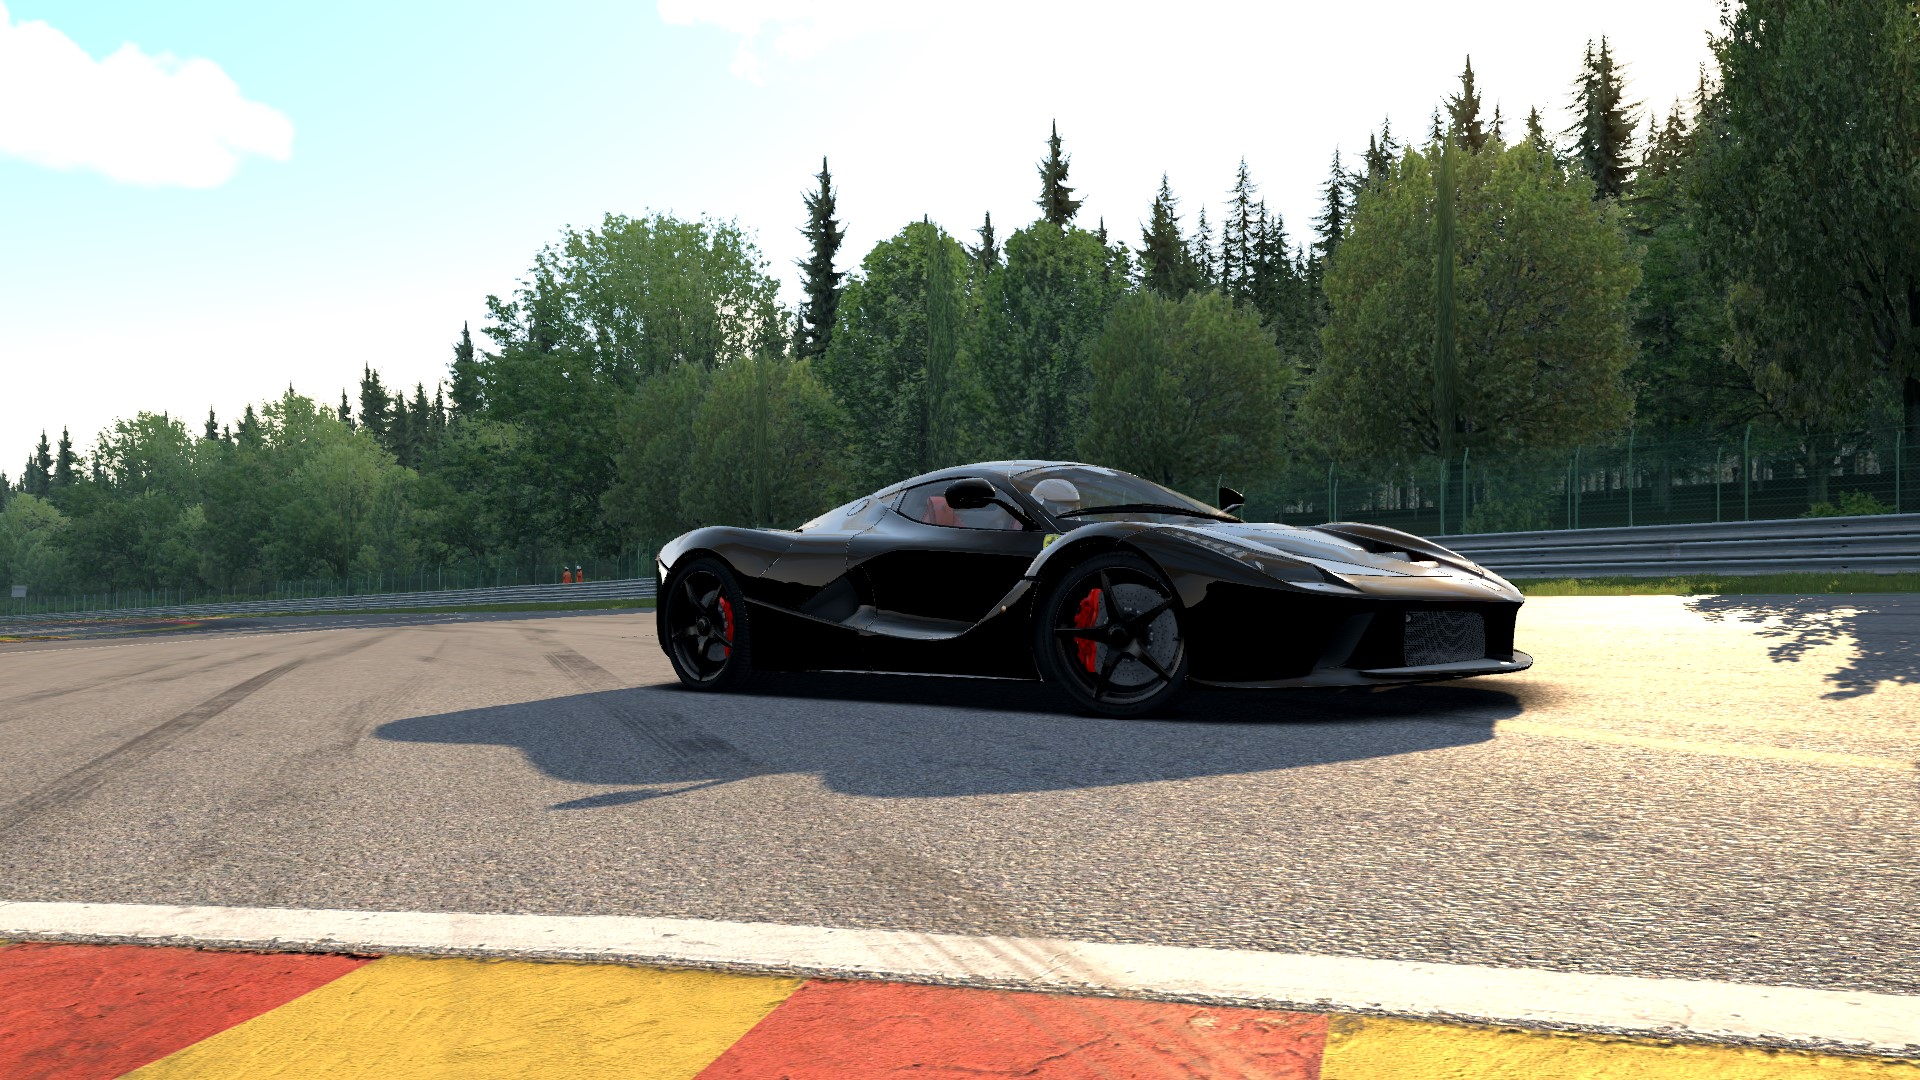 Screenshot_ferrari_laferrari_spa_21-10-2014-15-27-24.jpg